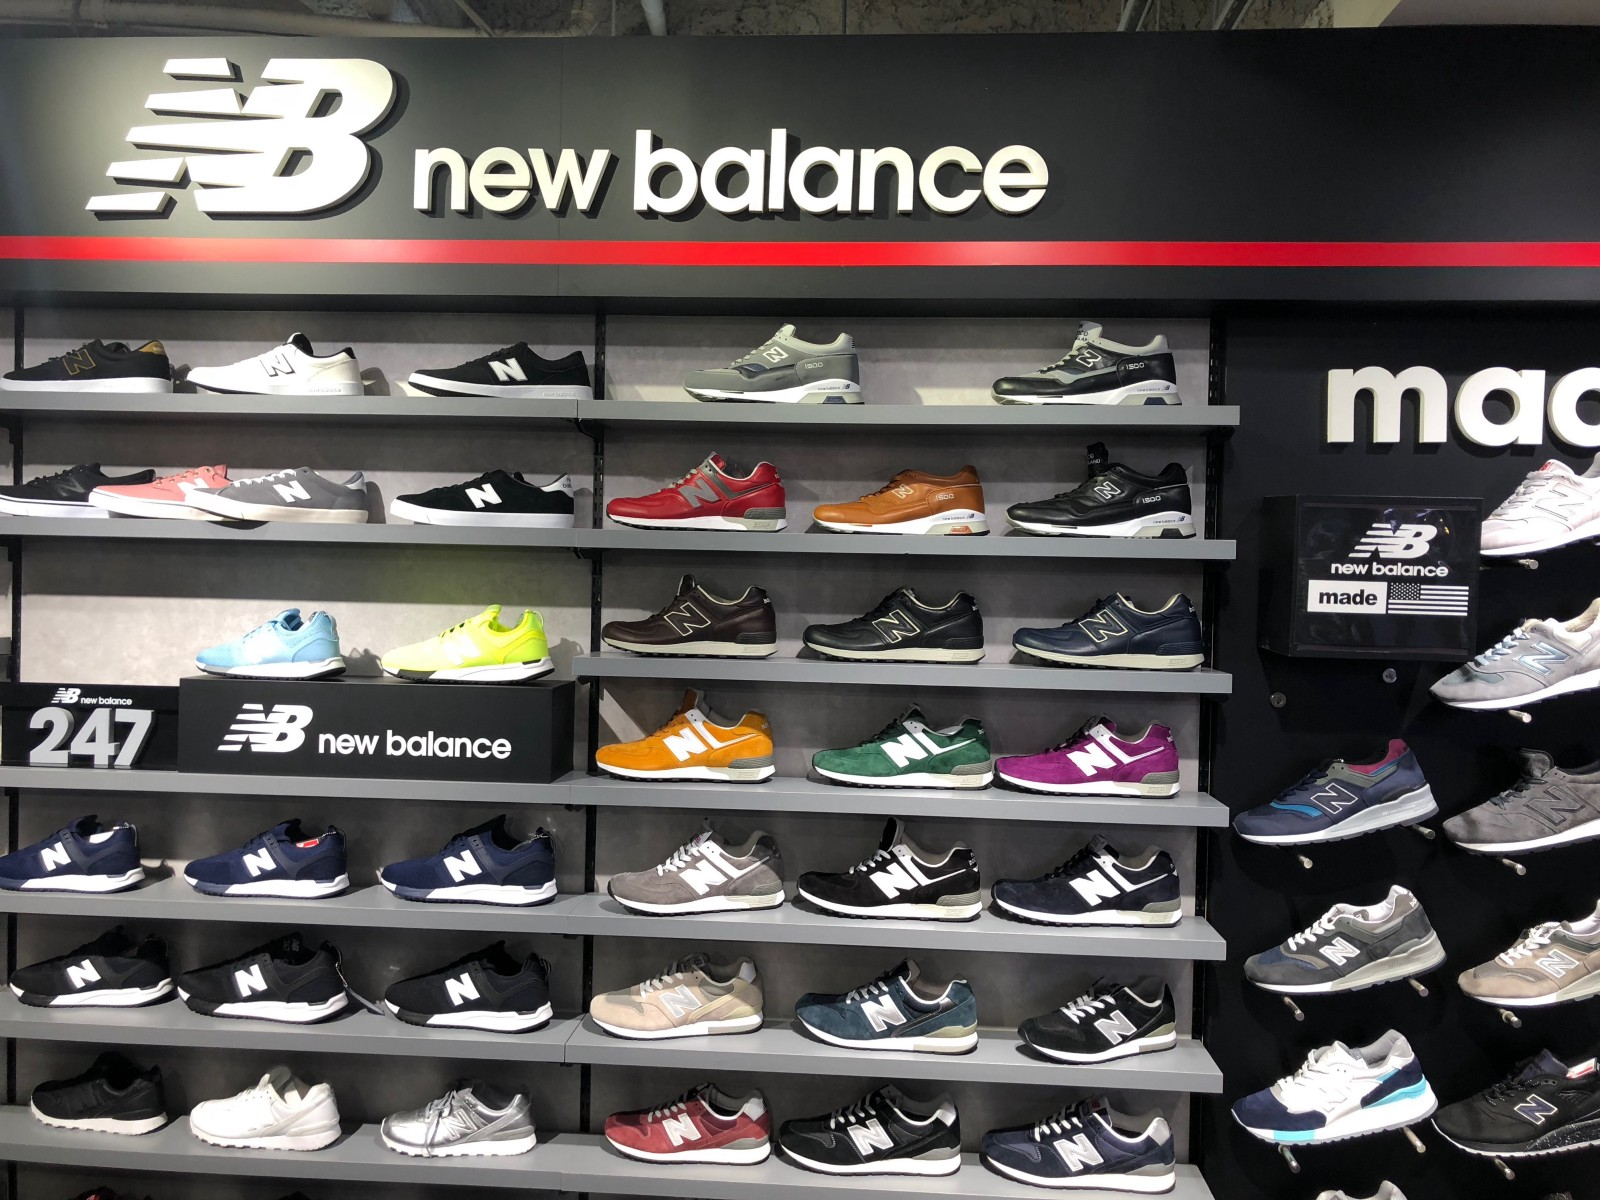 3dbc2bef7871d8 ABC-MART GRAND STAGE Shibuya Center-gai is one of the largest sneakers  stores providing clothing fashion items as well as a variety of brands of  sneakers.